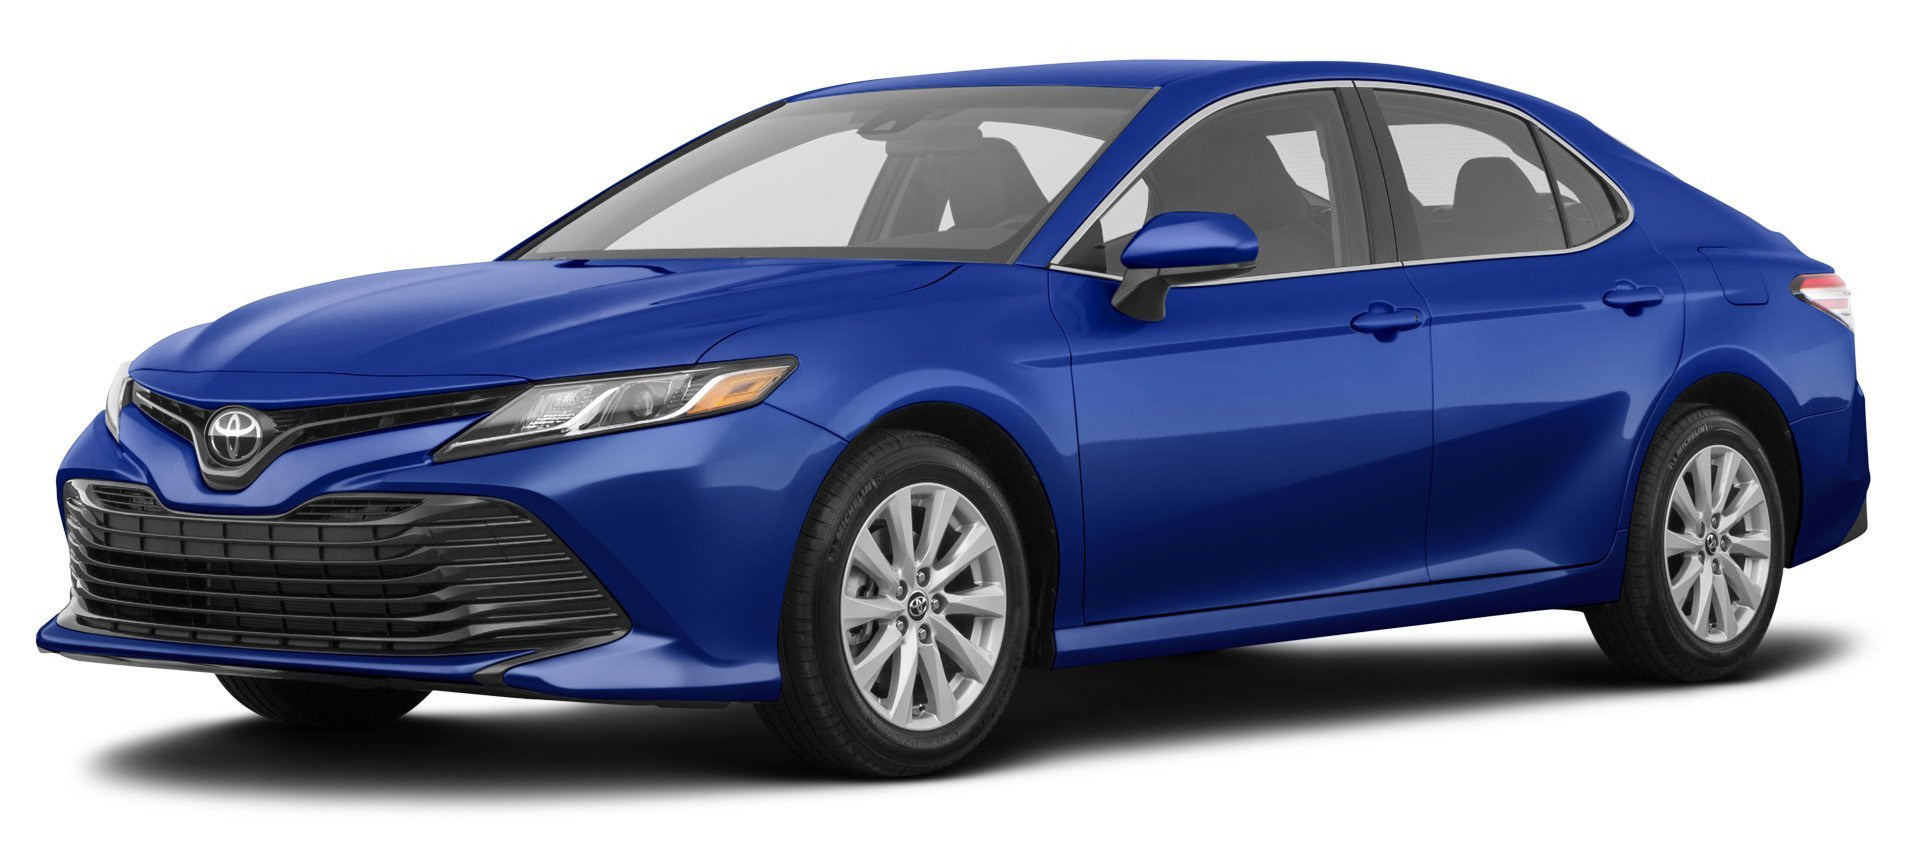 2018 toyota camry reviews images and specs vehicles. Black Bedroom Furniture Sets. Home Design Ideas